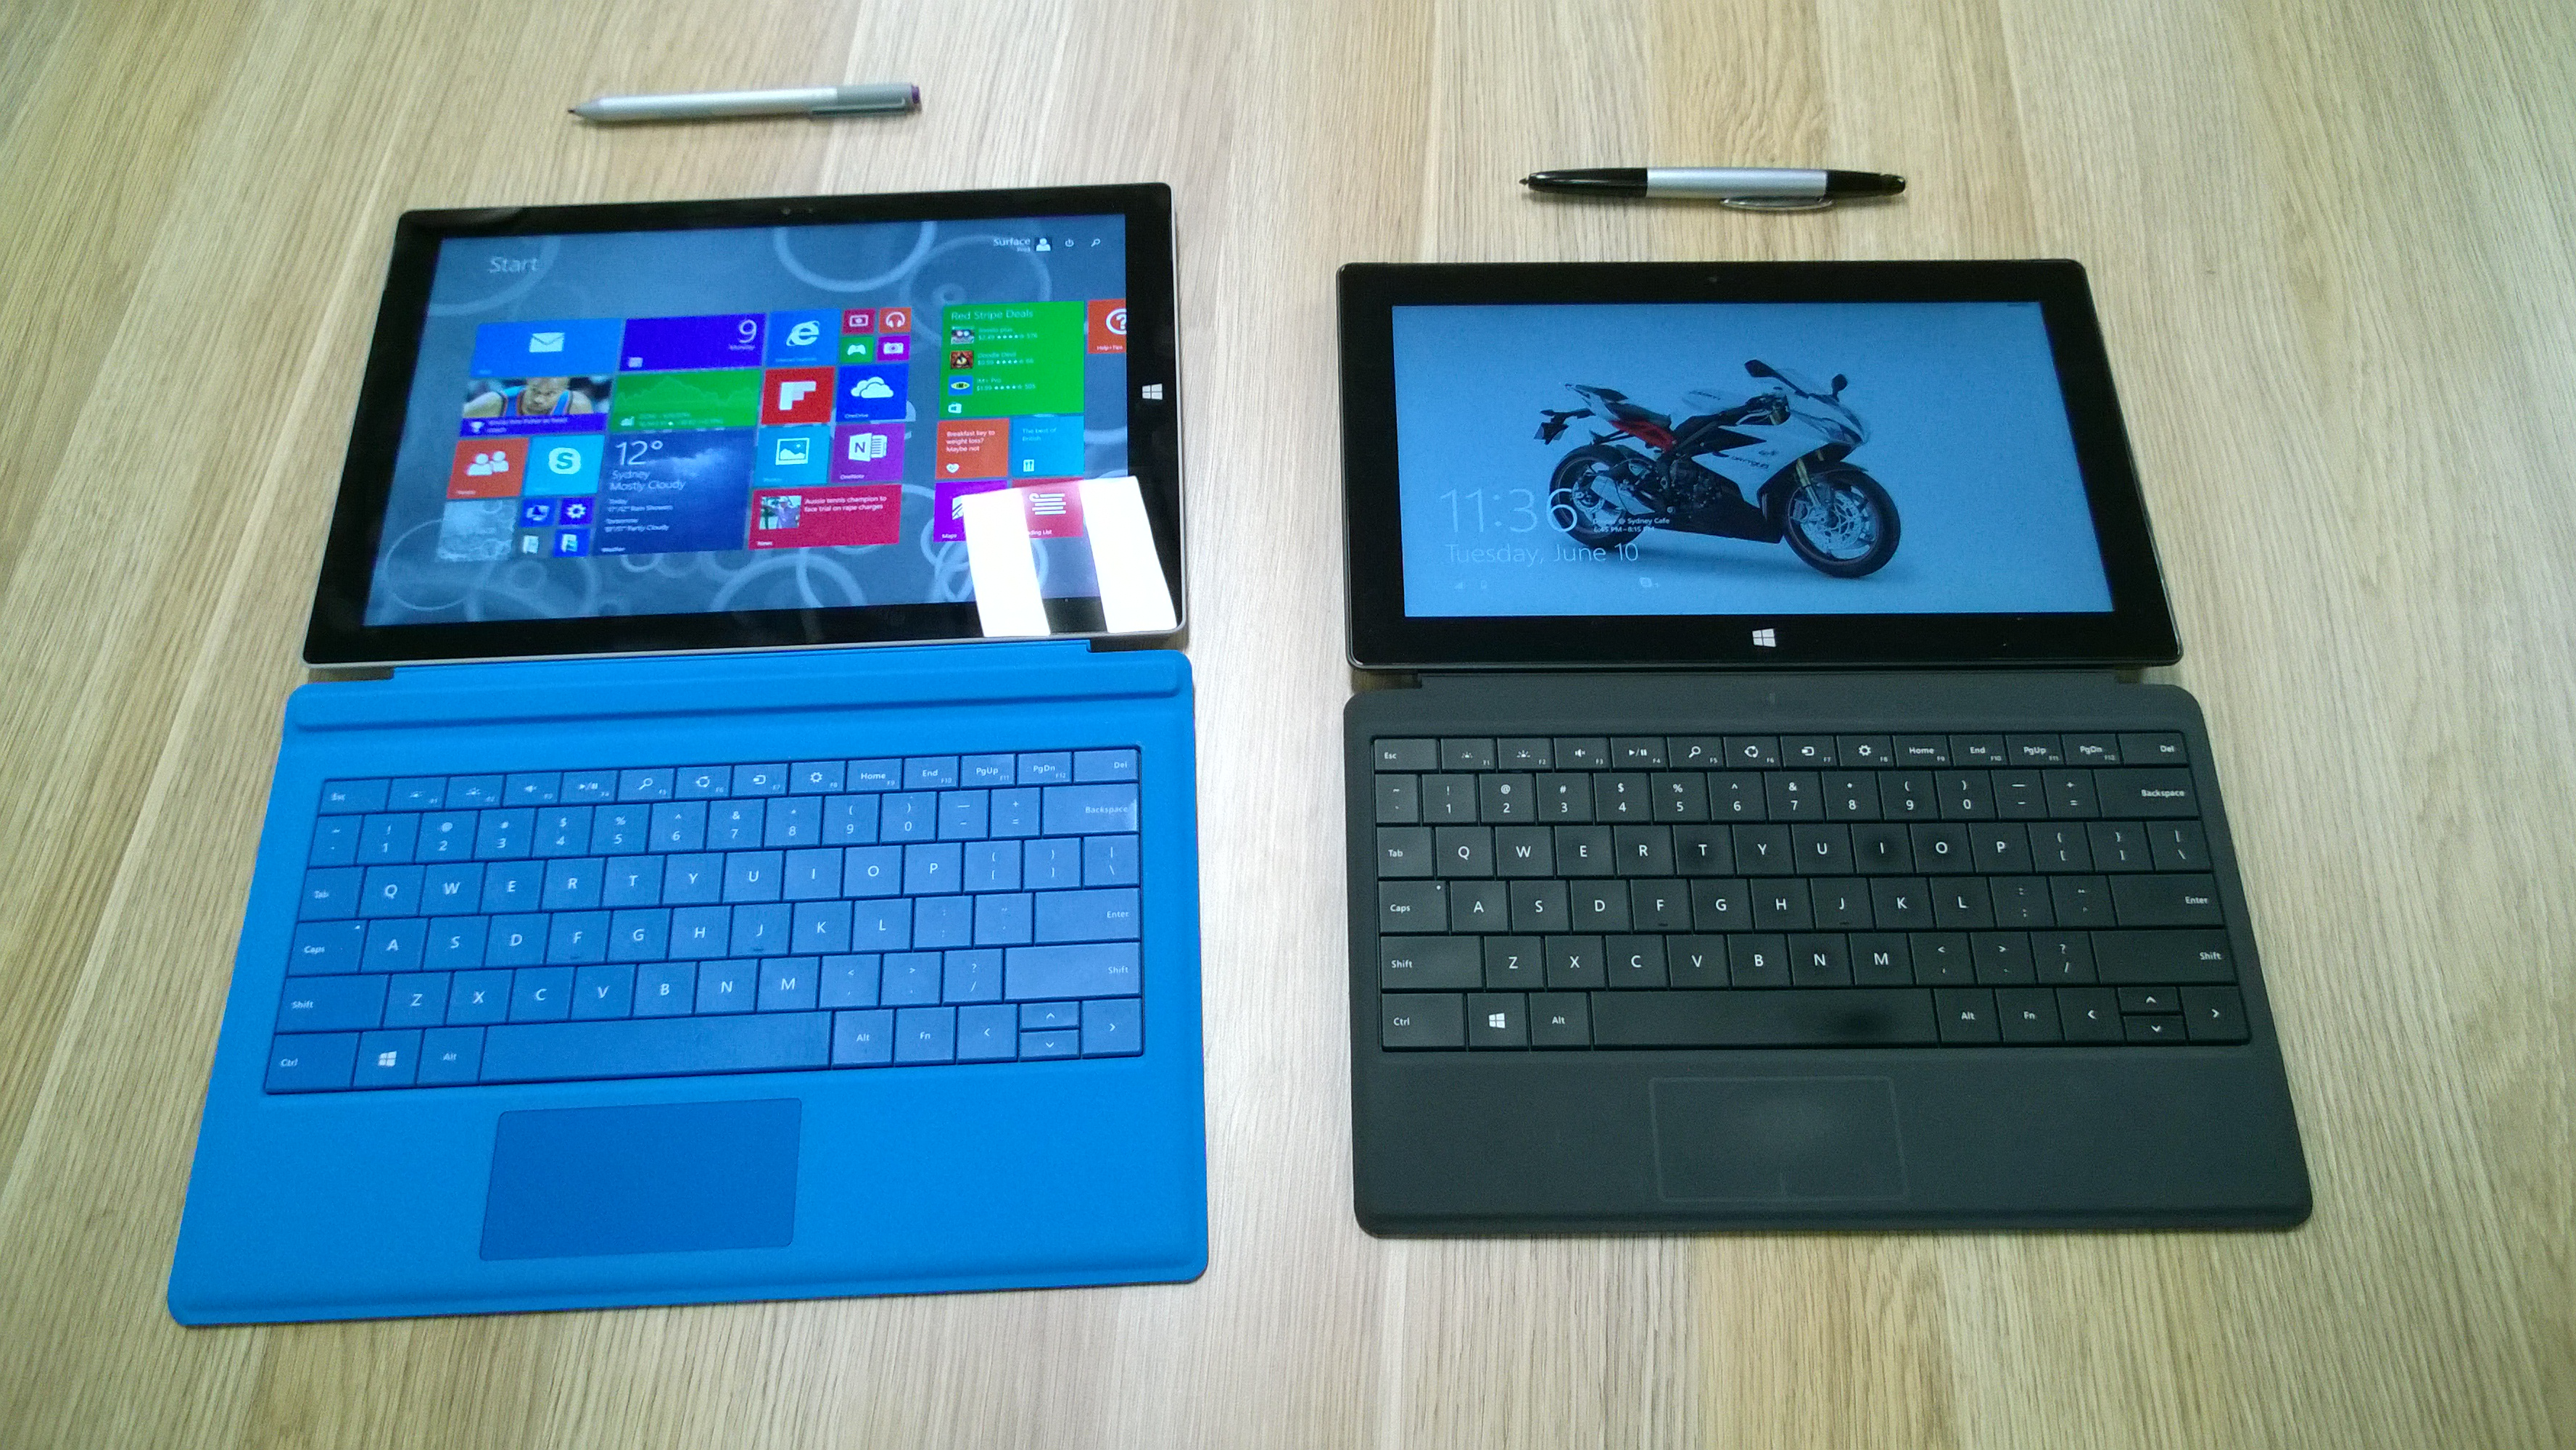 Surface Pro3 and Surface Pro 2